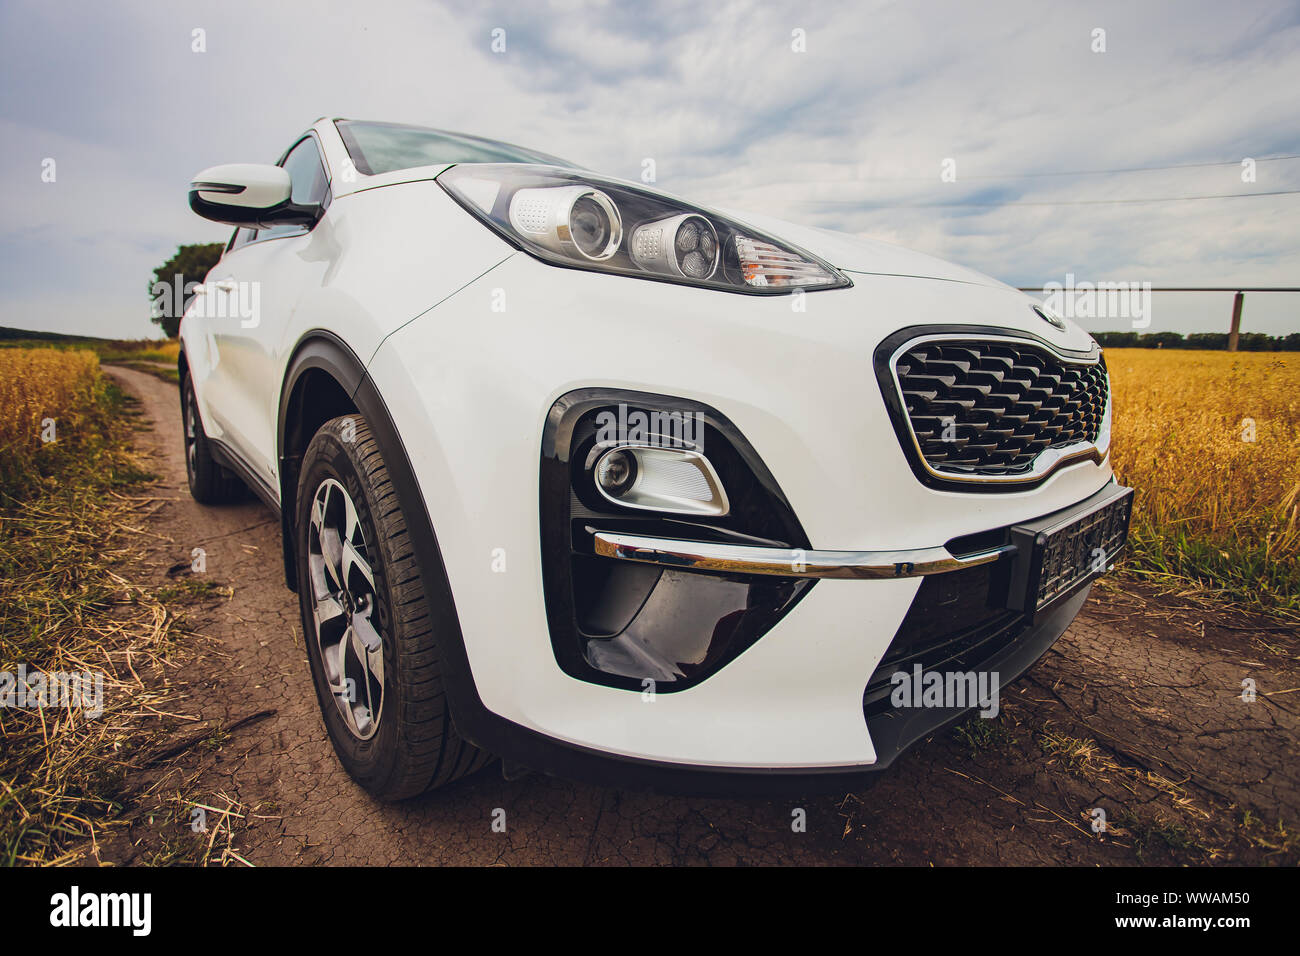 Ufa, Russia, 1 July, 2019: car Kia Sportage 2.0 CRDI awd or 4x4, white color, parked on the road, next to a large rock, with a beautiful blue sky in t Stock Photo